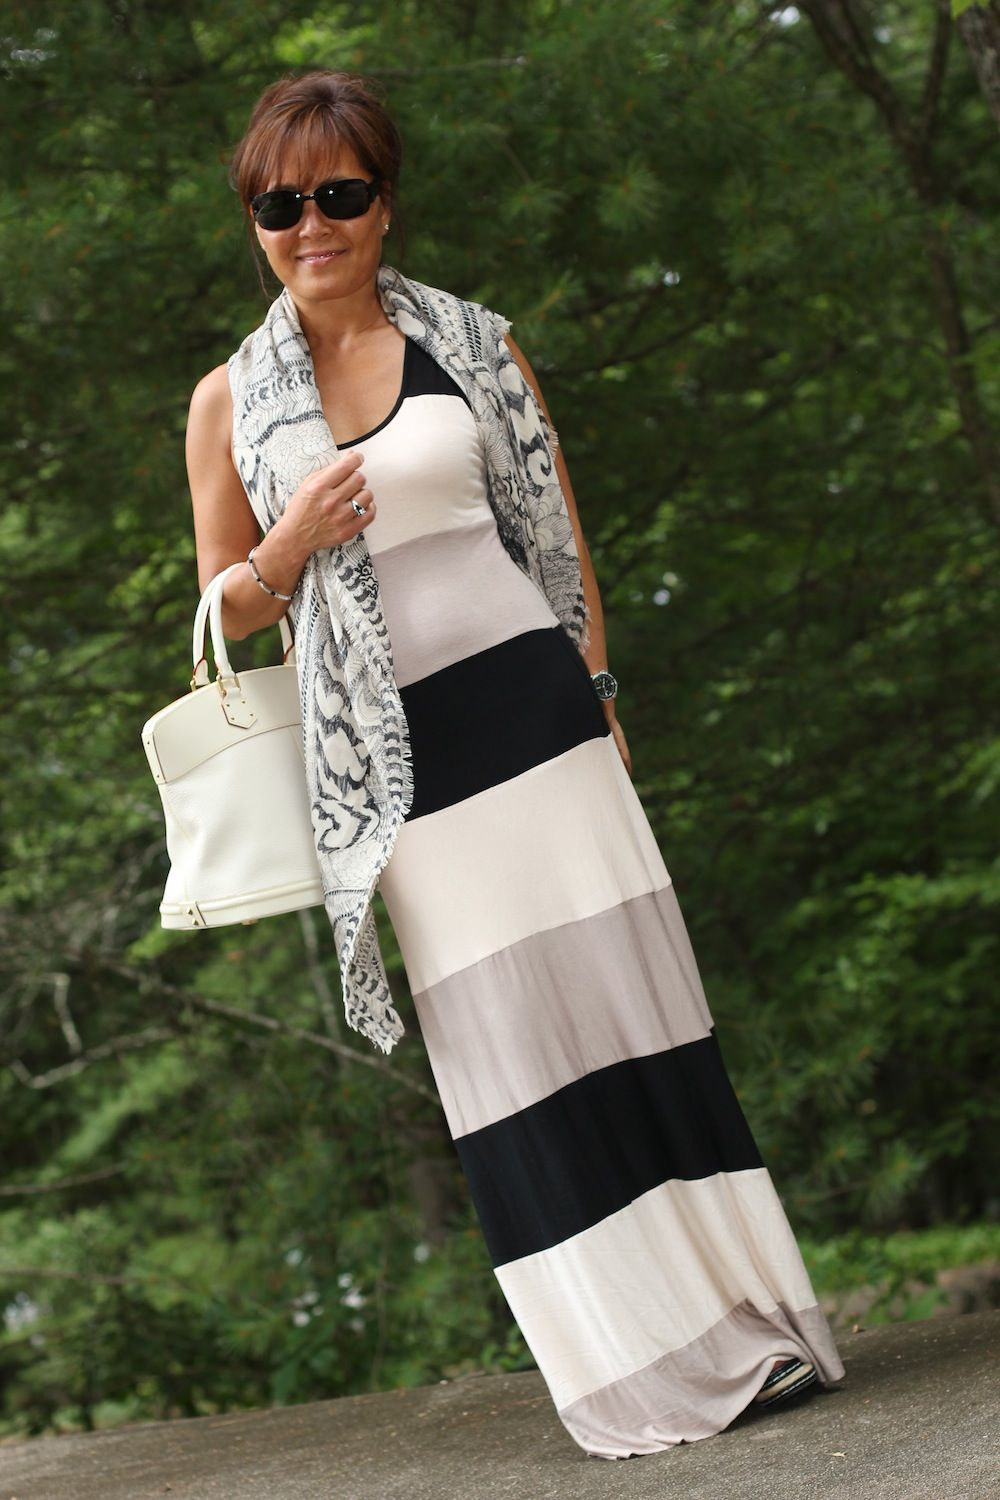 Fashion For Women Over 50 Living Better At 50 Online Womens Over 50 Womens Fashion Fashion Over 50 Fashion